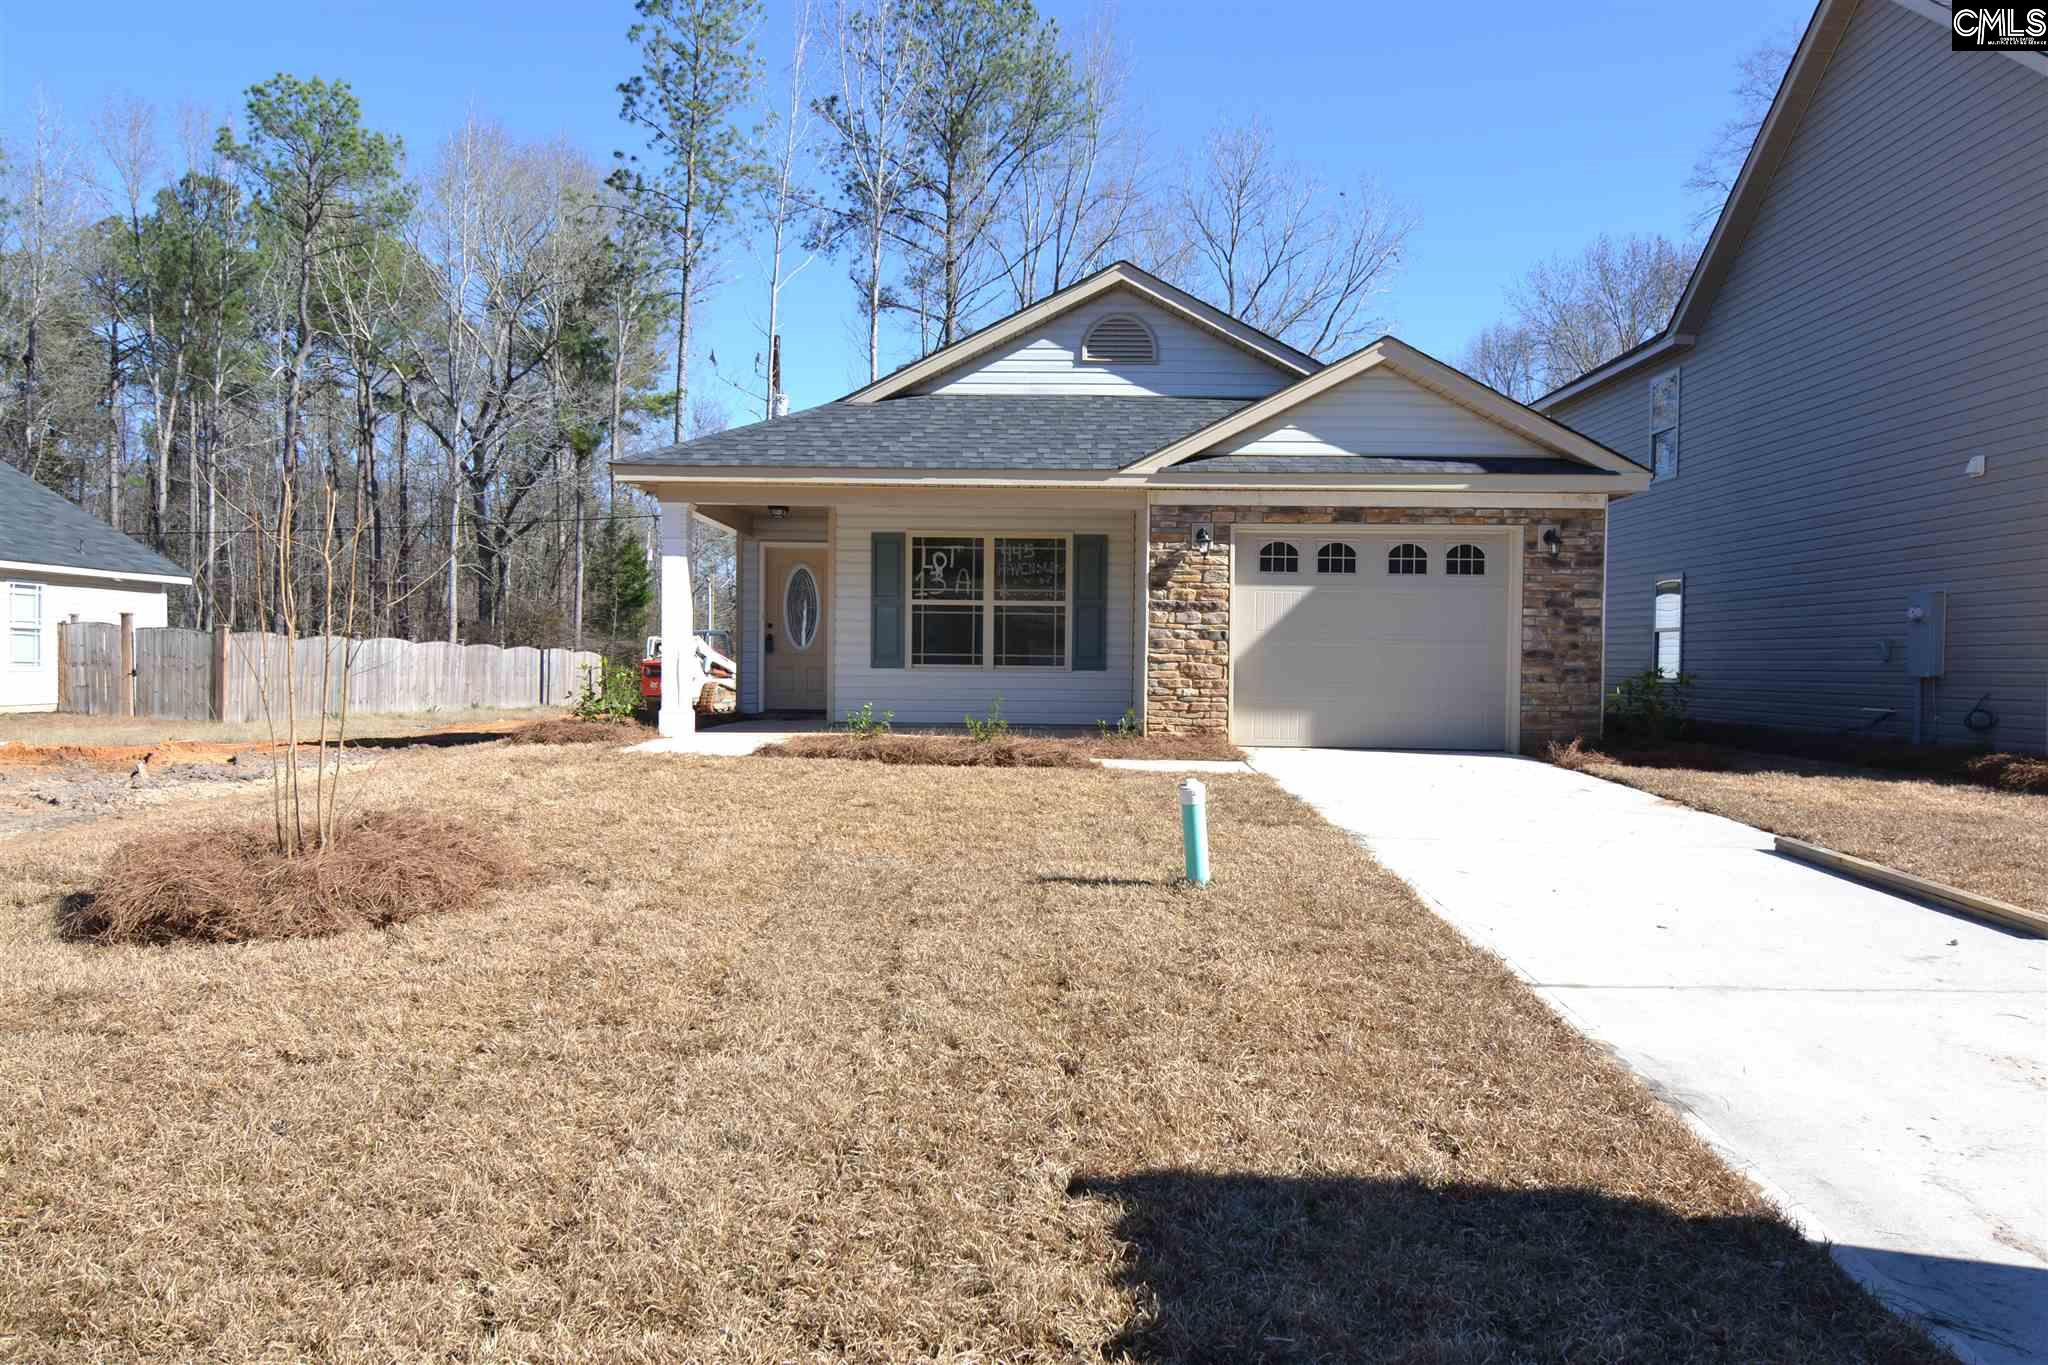 445 Ravenscroft #13A West Columbia, SC 29172